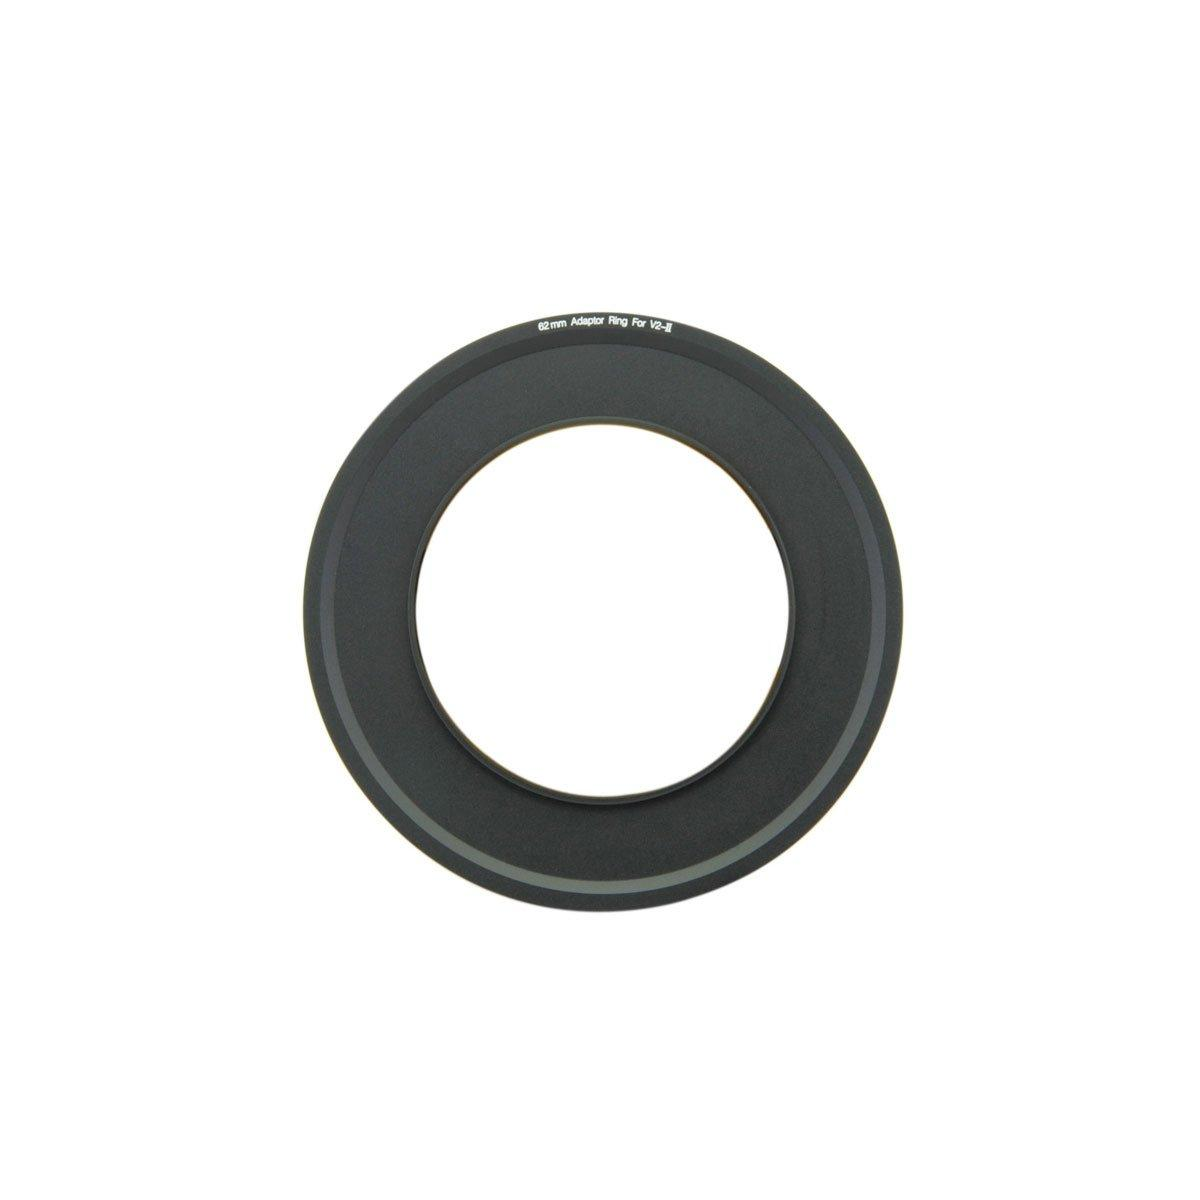 NiSi Adapter Rings for 100mm Aluminum Filter Holder V2-II – 82mm